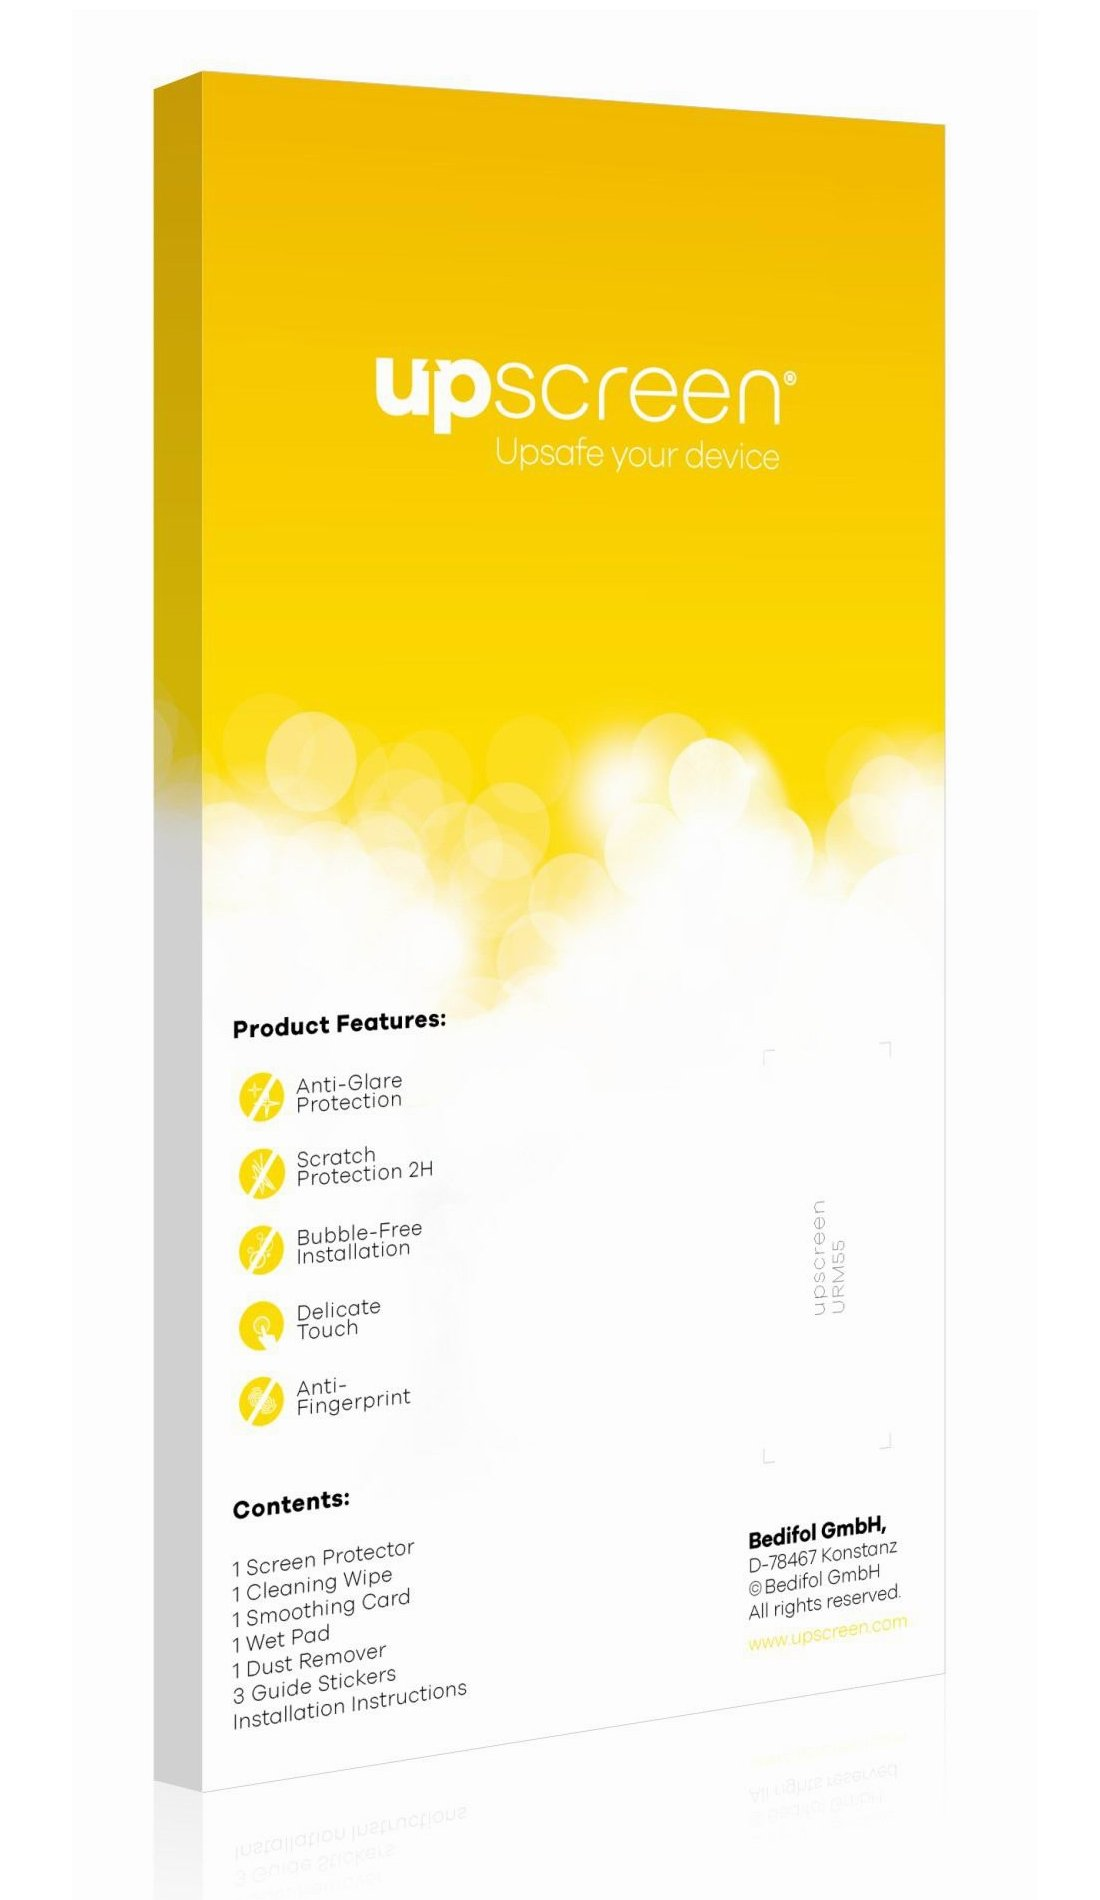 upscreen Reflection Shield Matte Screen Protector for Acer Travelmate 320, Matte and Anti-Glare, Strong Scratch Protection, Multitouch optimized by upscreen (Image #3)